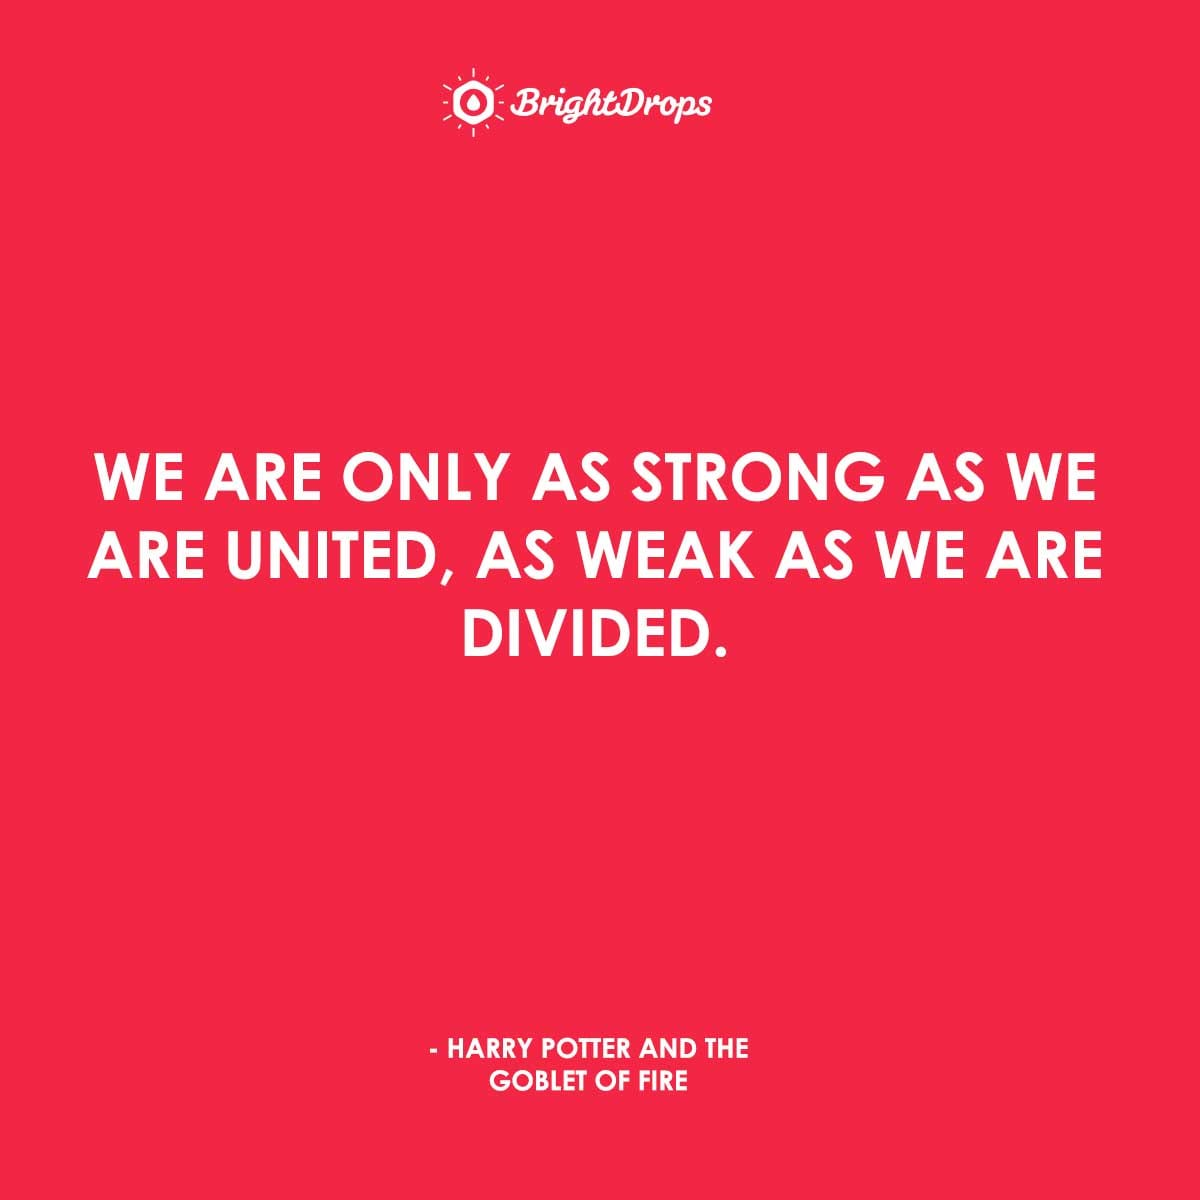 We are only as strong as we are united, as weak as we are divided. - Harry Potter and the Goblet of Fire